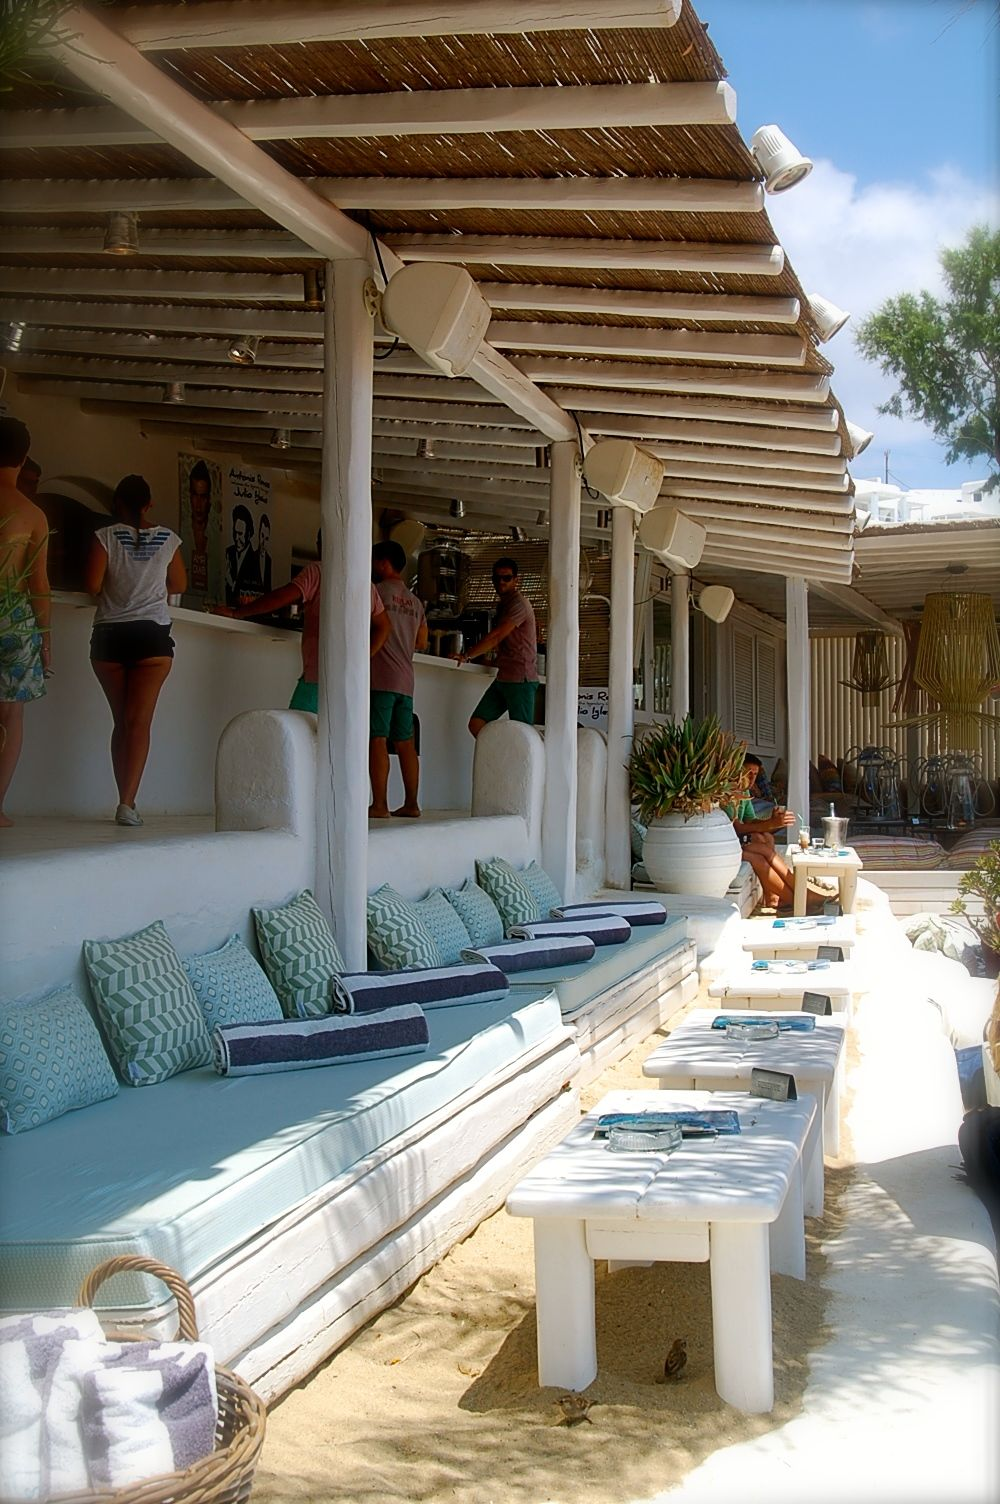 Mobilier Extérieur Club Piscine Panormos Beach Bar - Mykonos - Google Search | Hotel